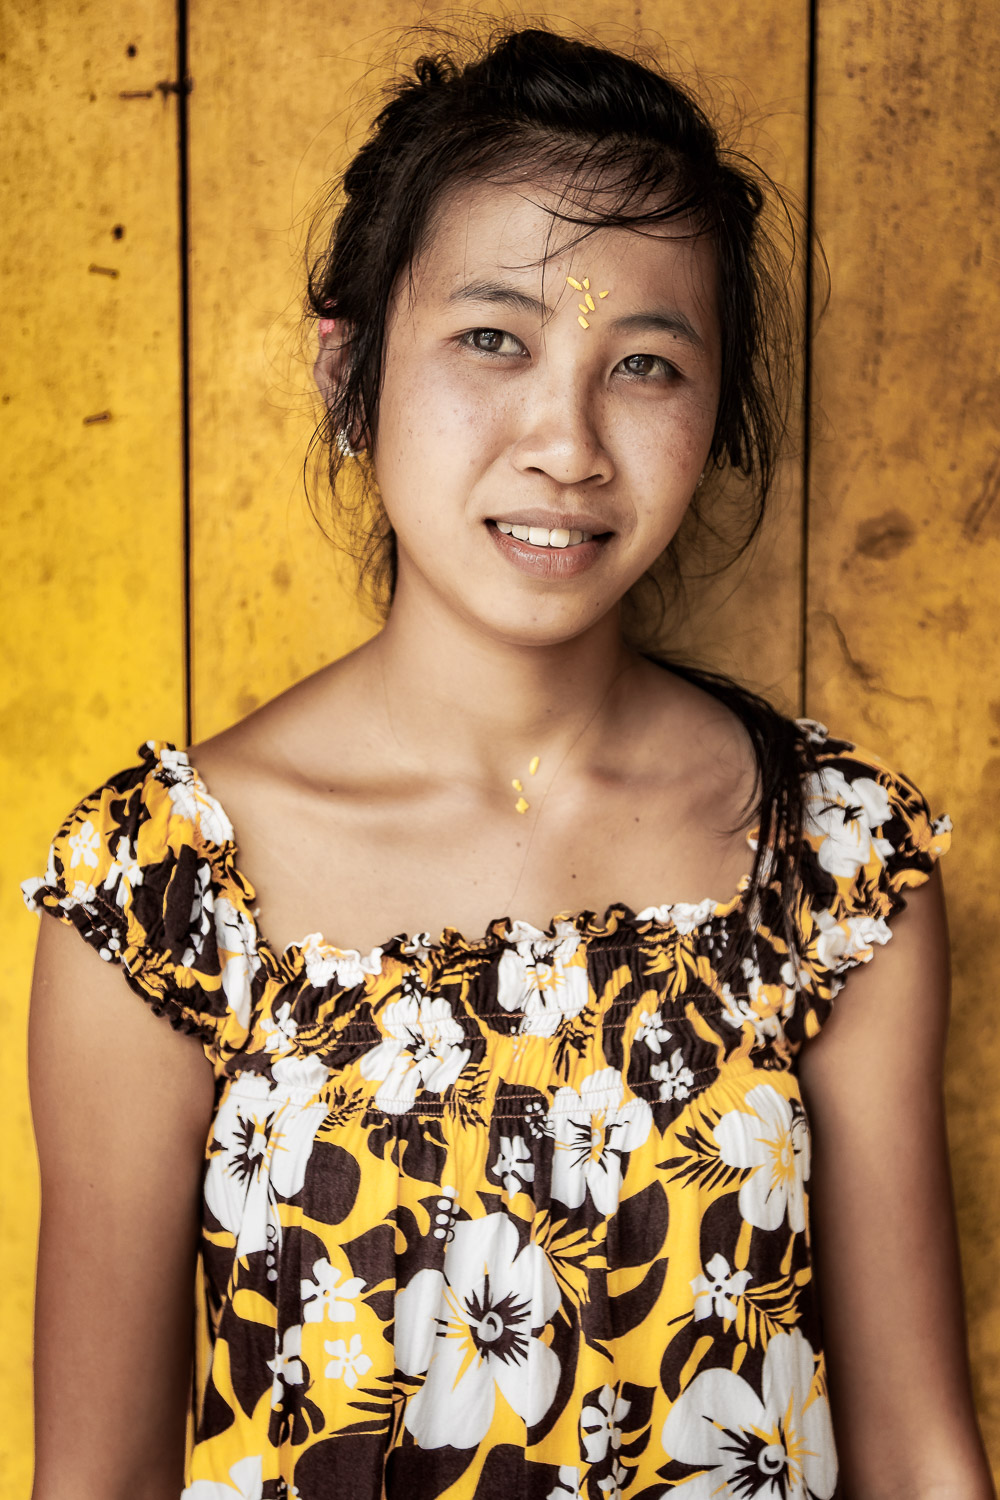 A    young Balinese woman    dressed in yellow and standing against a yellow painted wall in rural    Bali, Indonesia   .